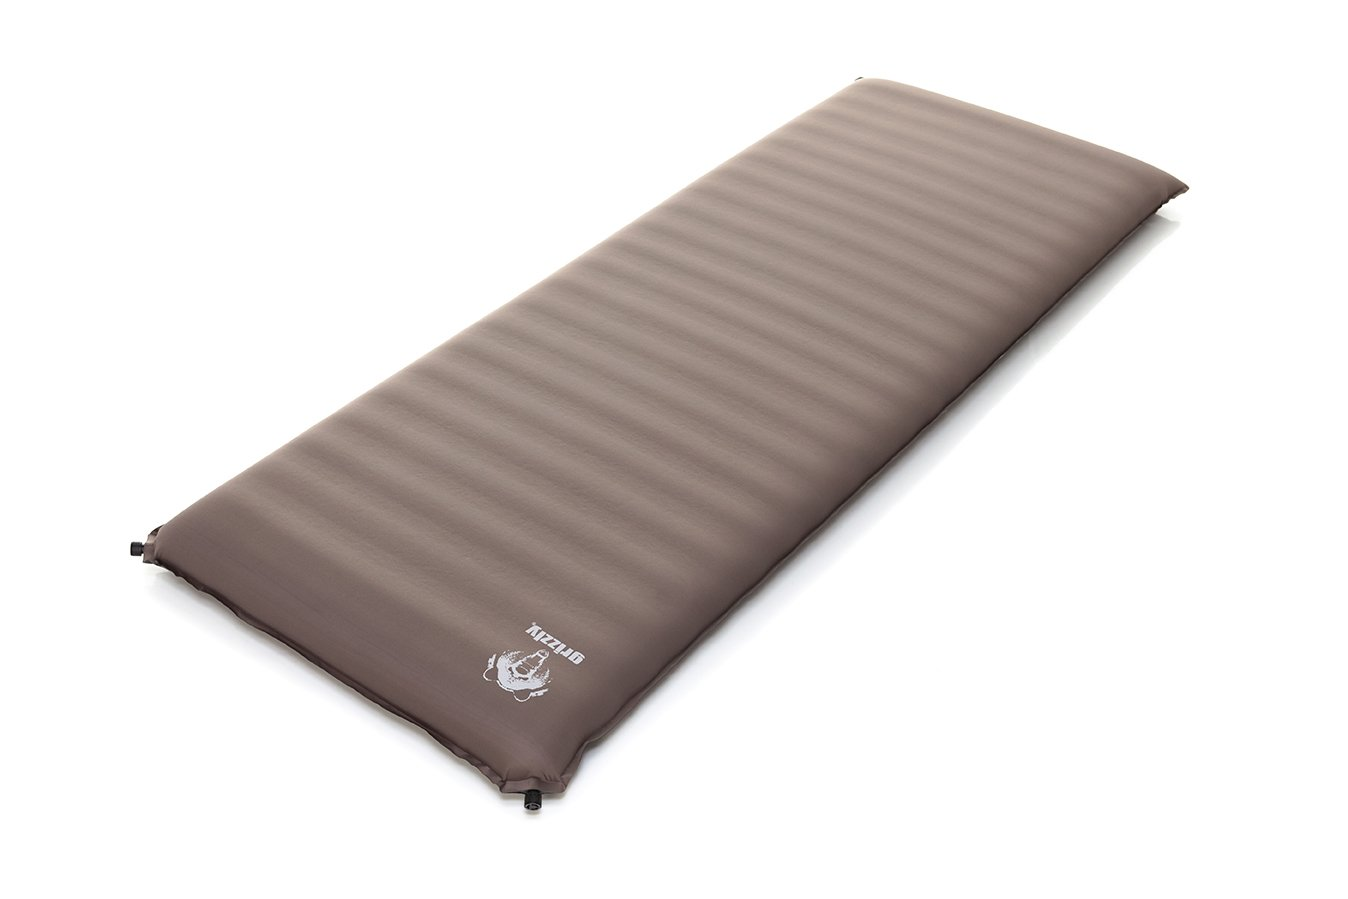 Blackpine Sports Grizzly 4-inch Moonwave Mat, Stone